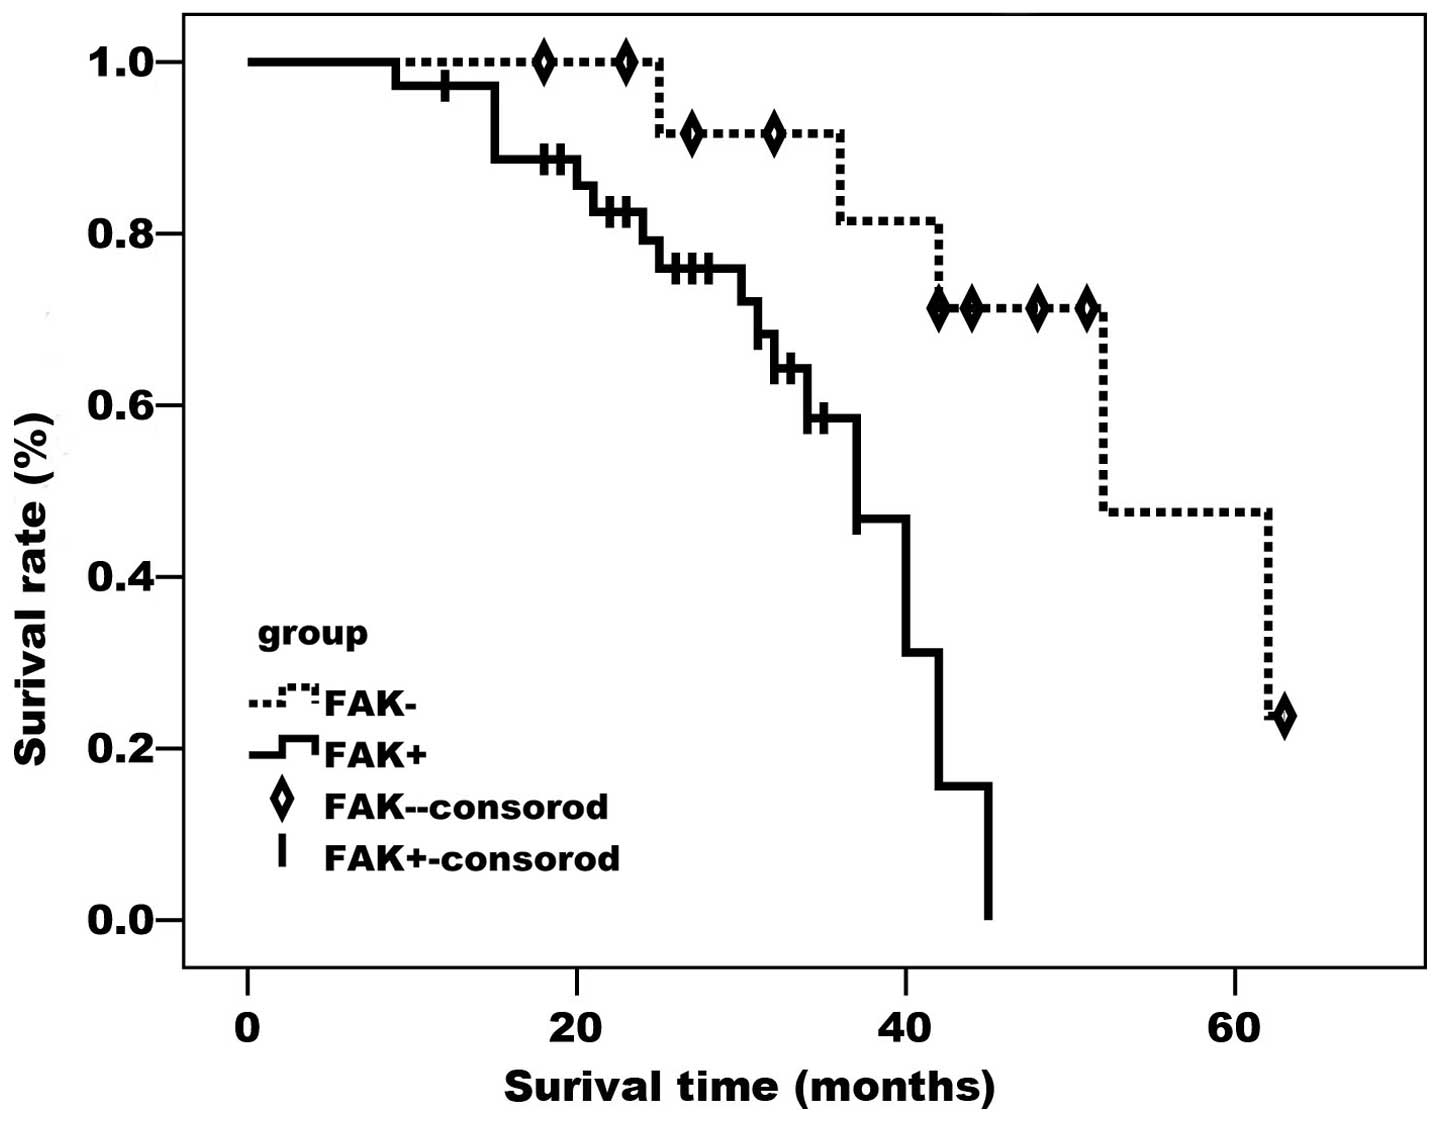 Expression and clinical significance of focal adhesion